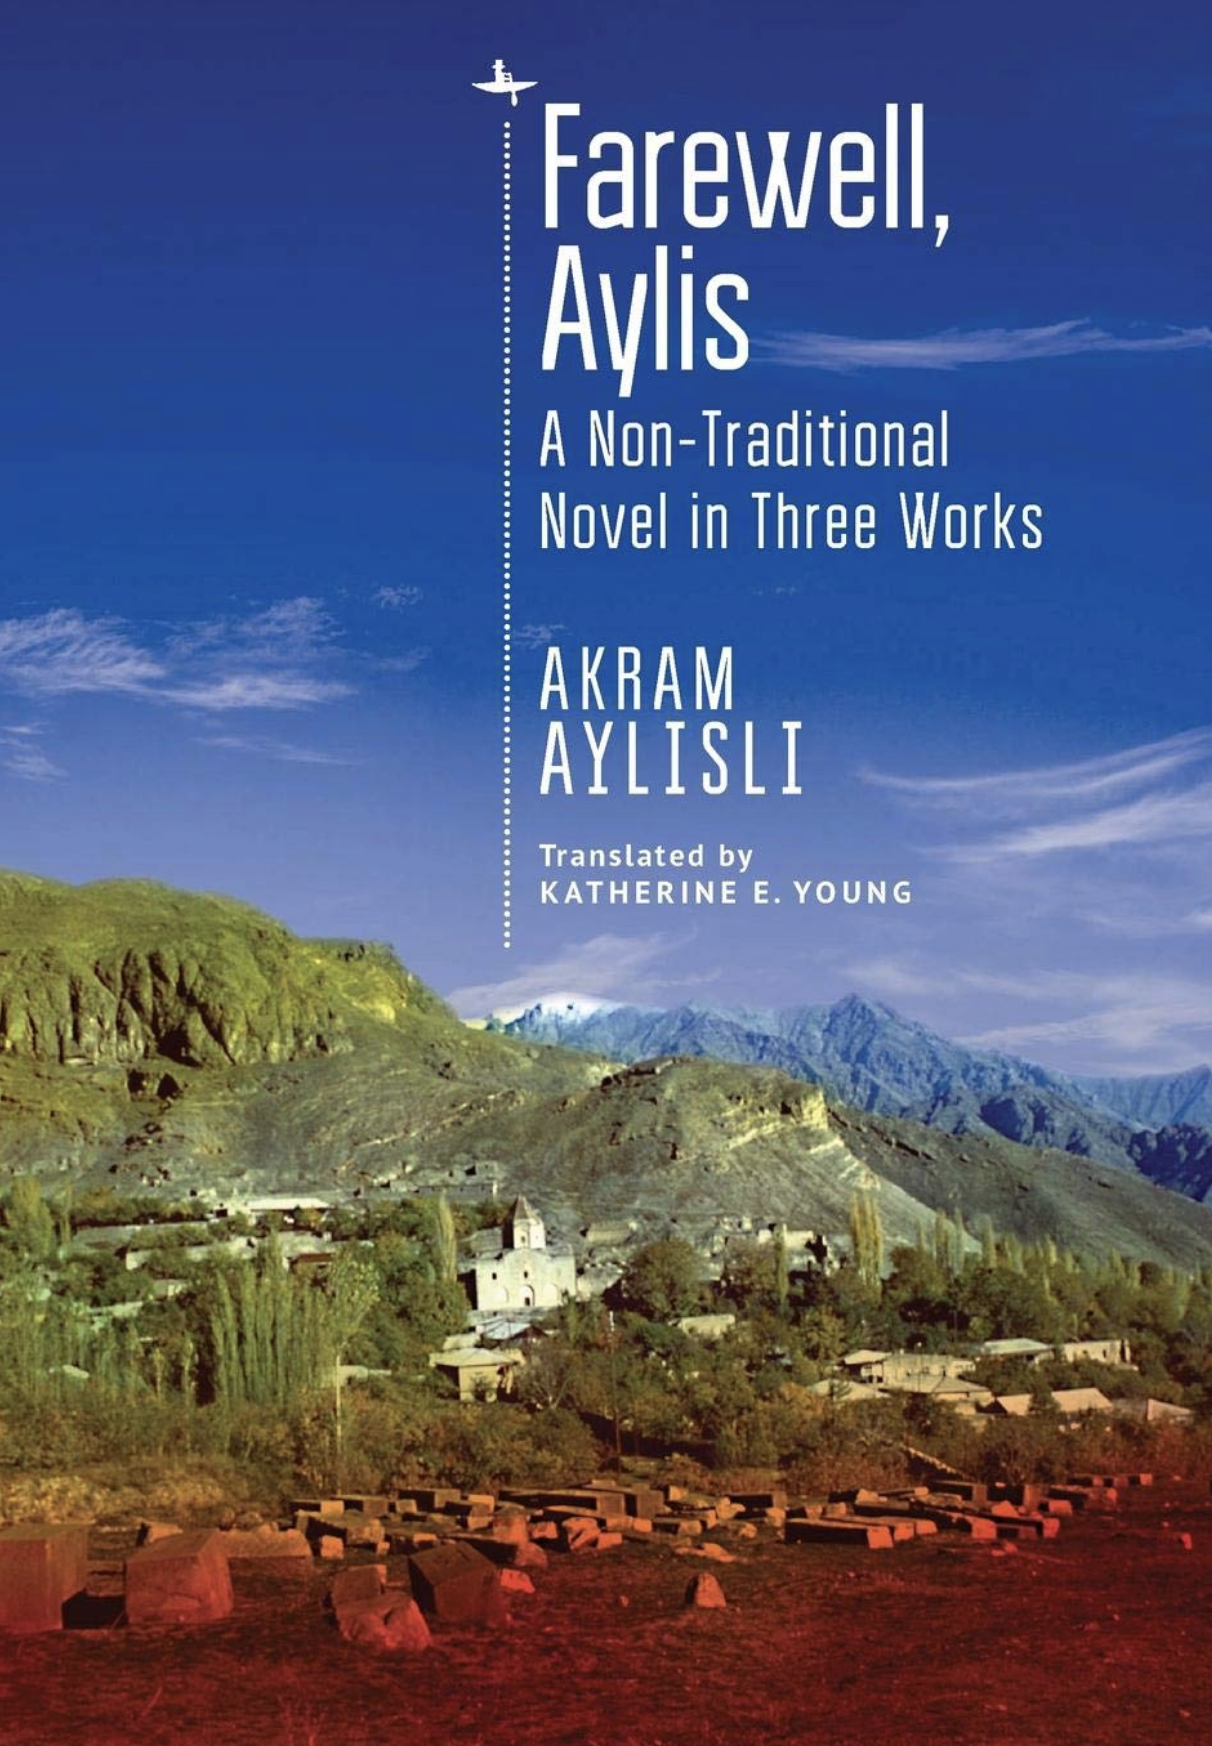 Review: Farewell, Aylis: A Non-Traditional Novel in Three Works